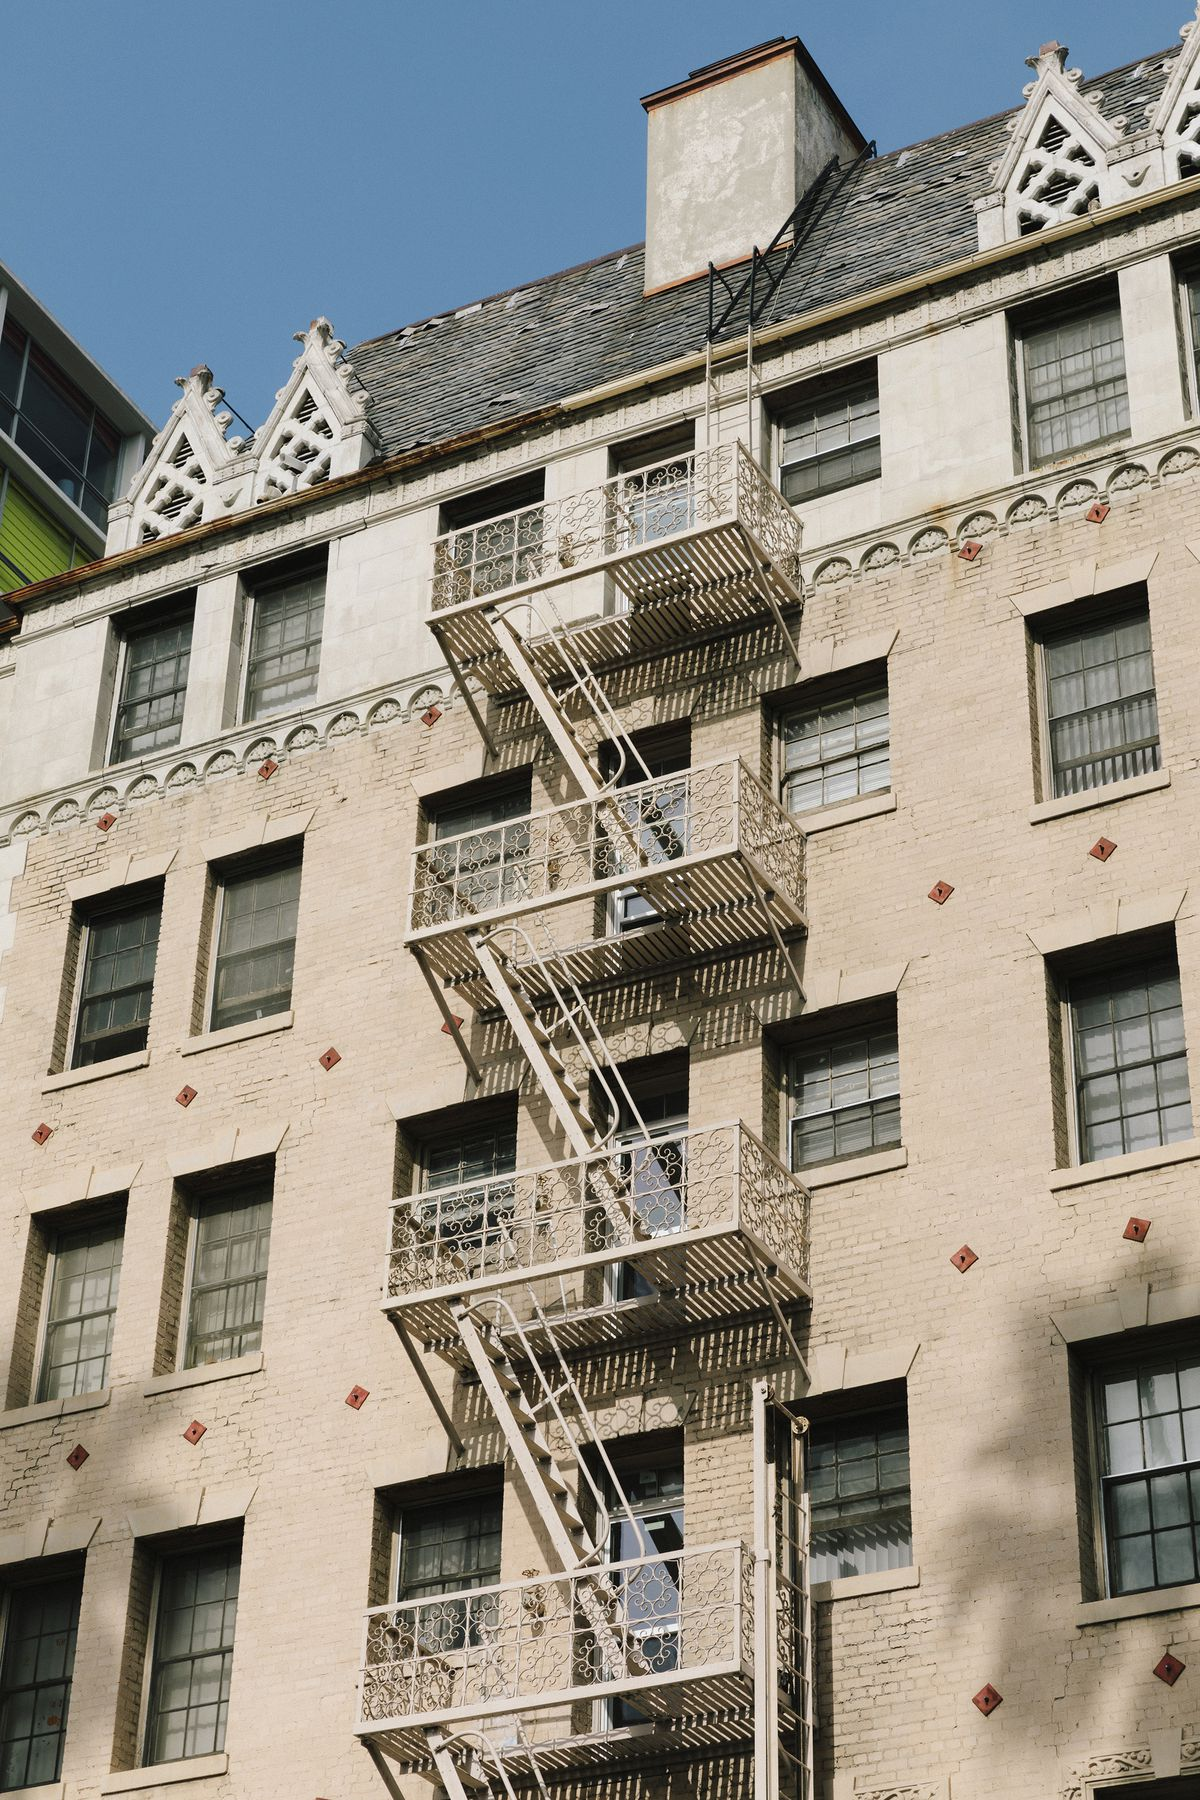 An old building with a fire escape and decorative, geometric embellishments.